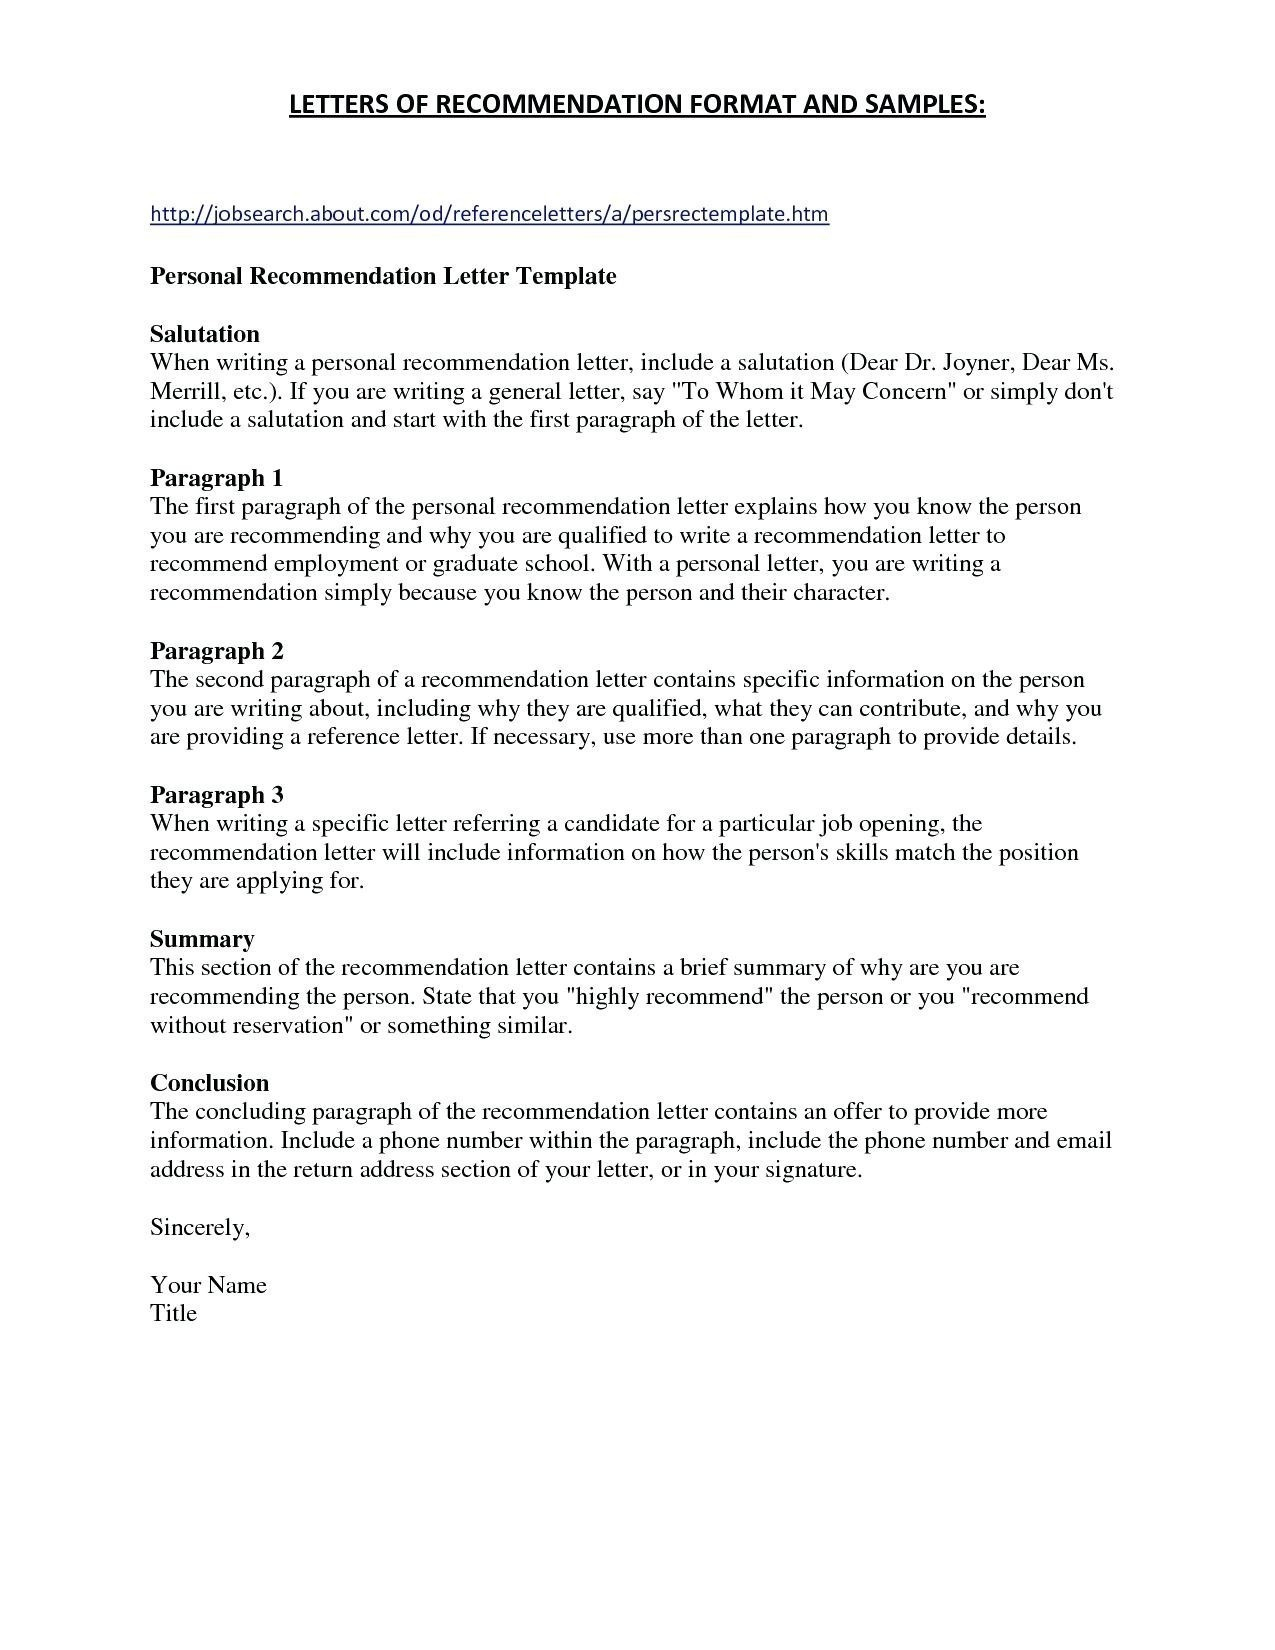 Letter Of Recommendation for A Friend Template - Inspirational Re Mendation Letter for A Friend Template